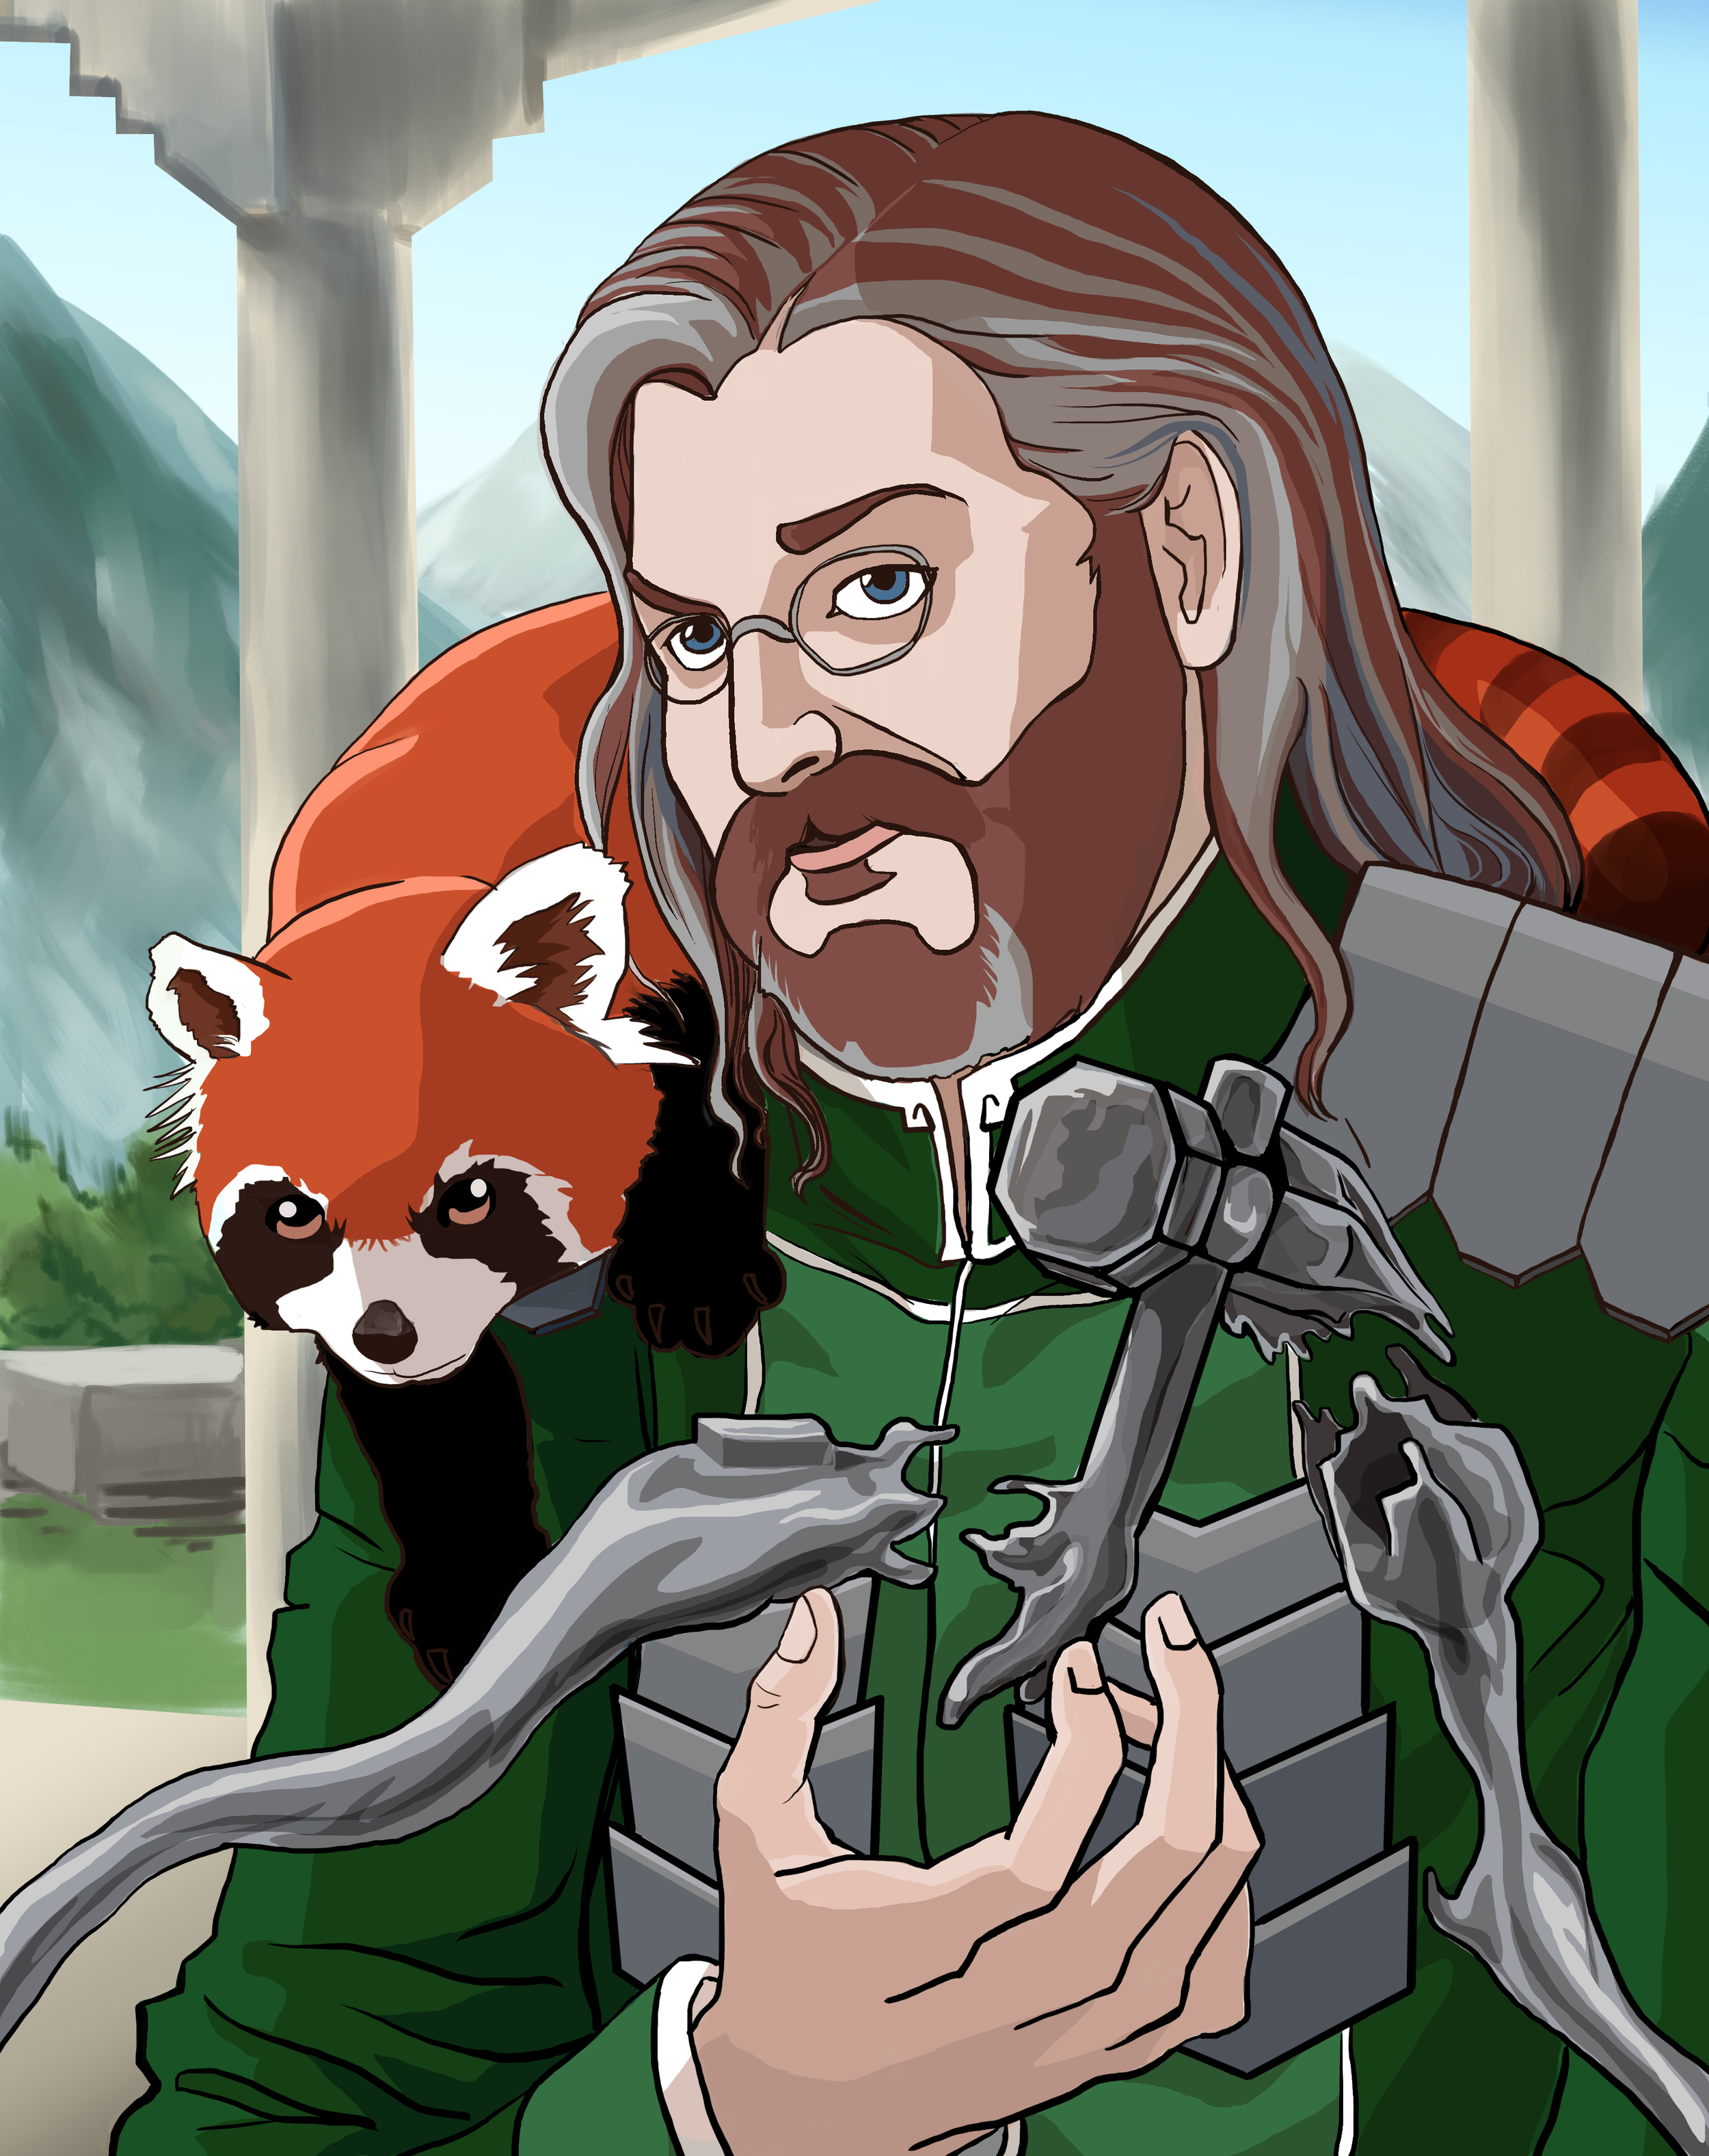 Jayson as a metalbending master with an adorable red panda to accompany him on his adventures.